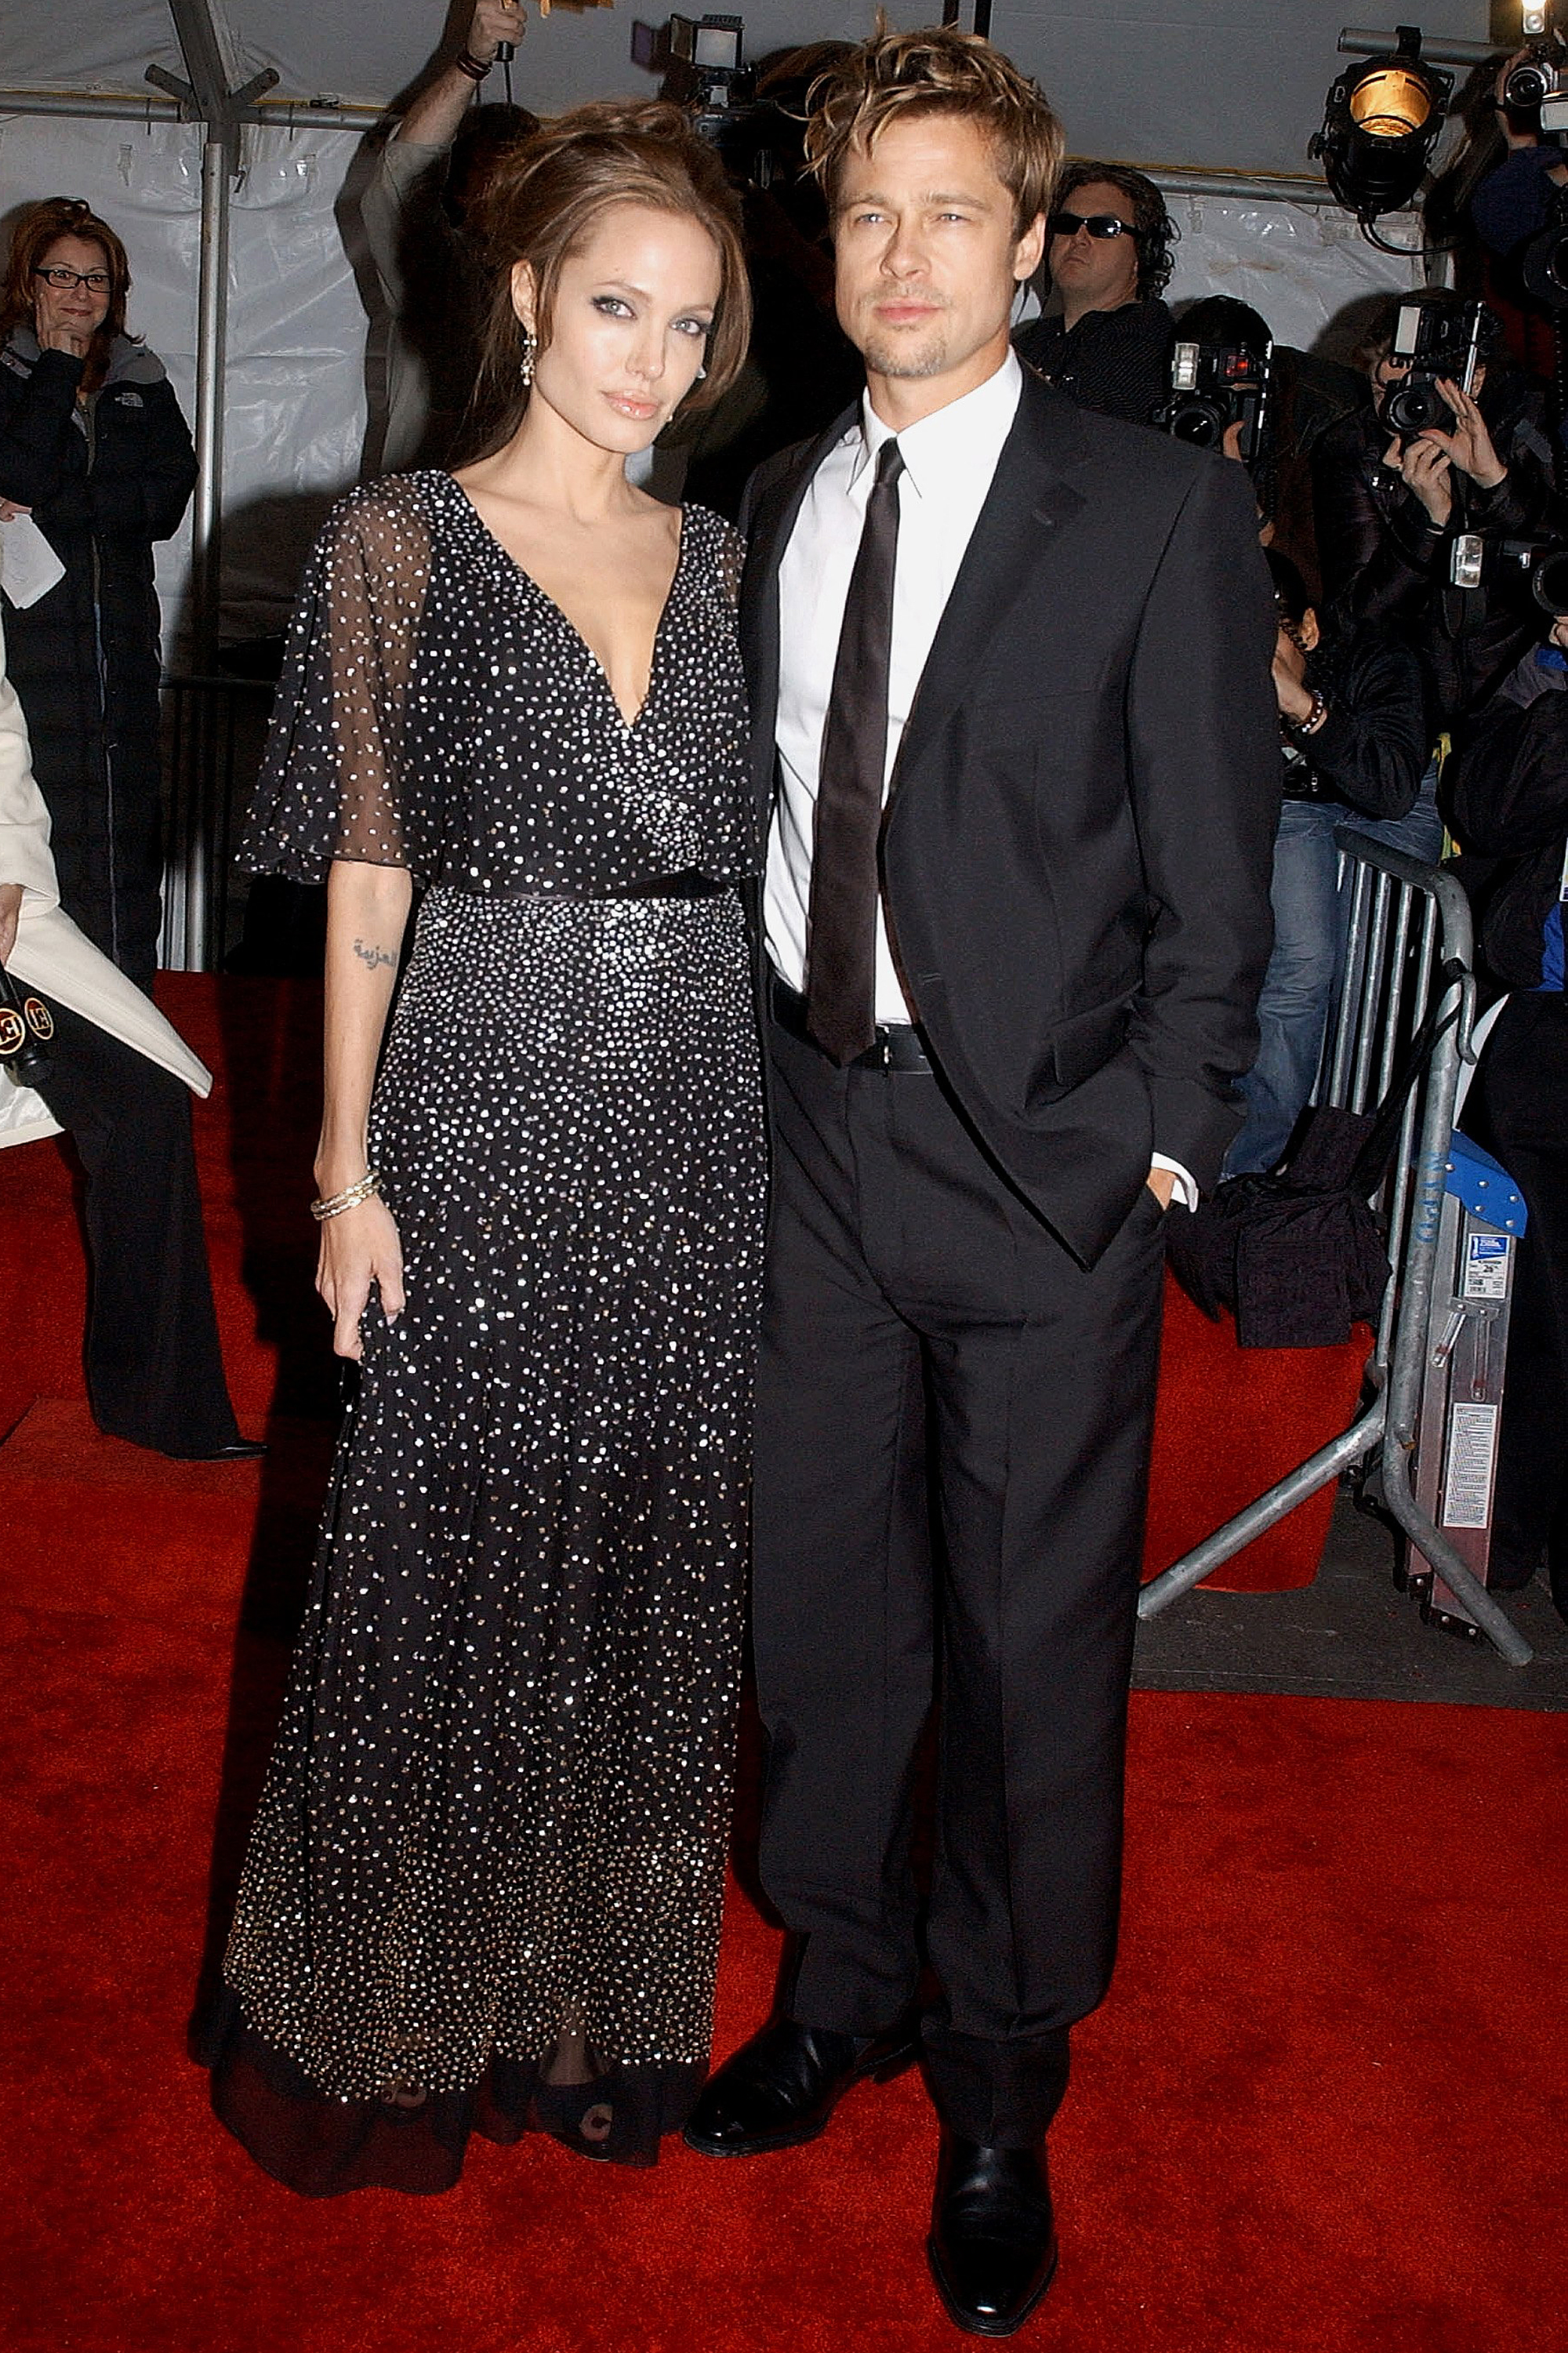 Angelina Jolie and Brad Pitt at the premiere of The Good Shepherd, on Dec. 11, 2006 in New York City.